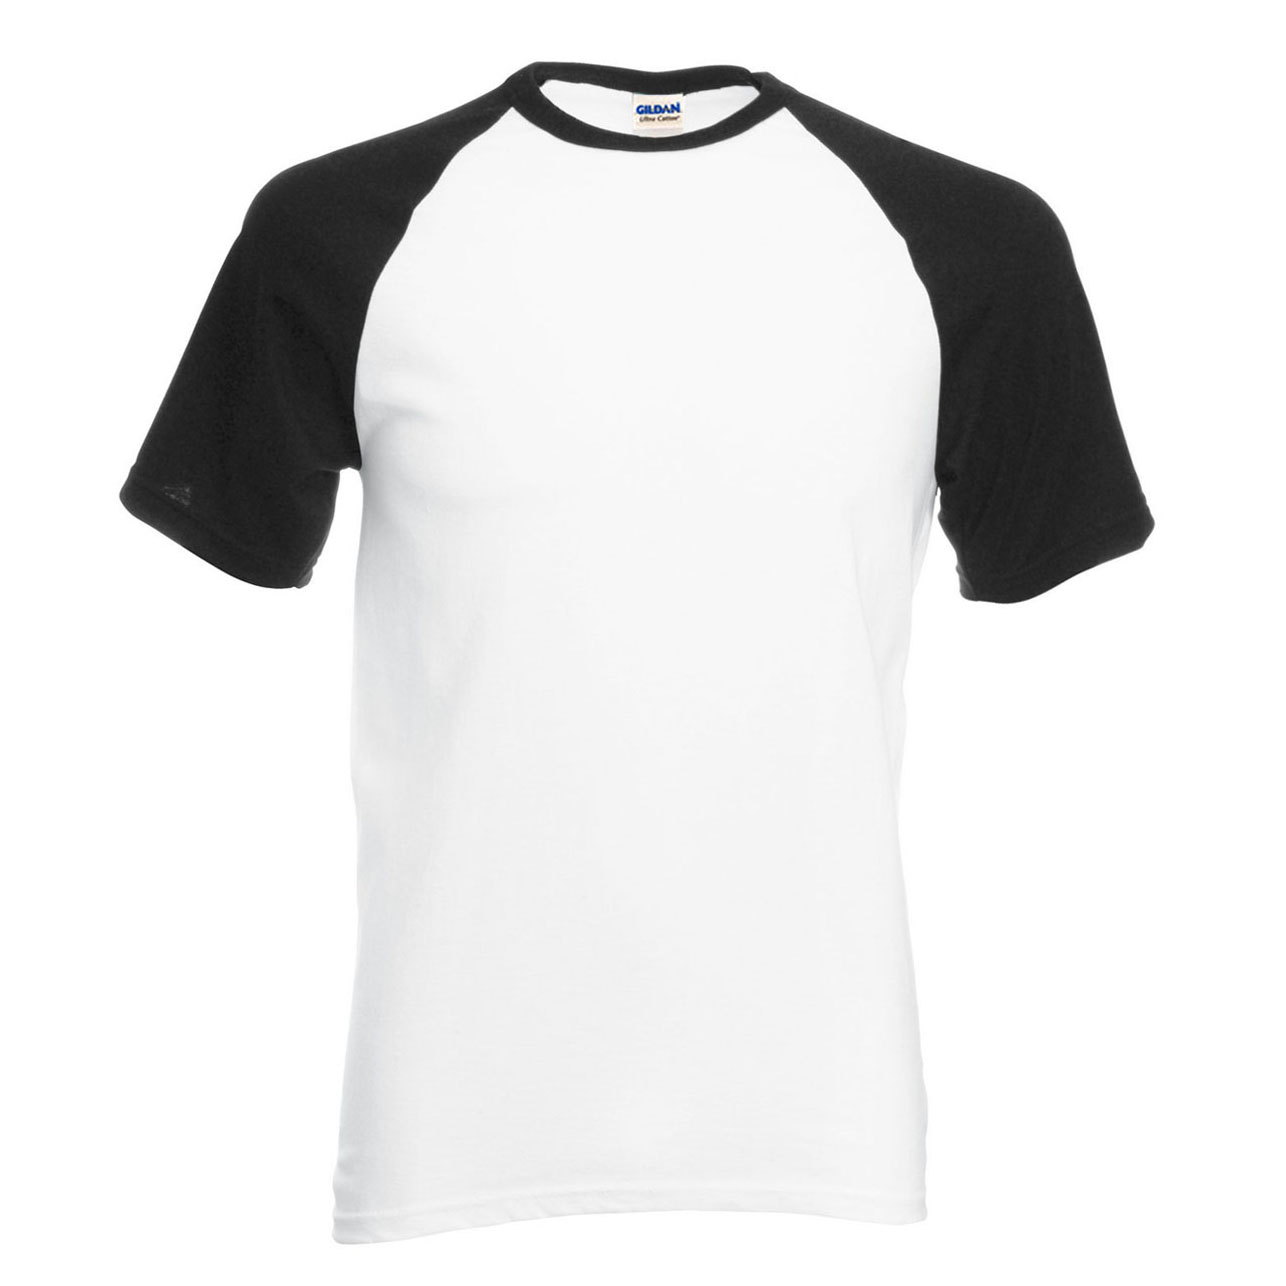 Solid Color   T     Shirts   Men 2019 Hot Summer Cotton High Quality Raglan   T  -  shirt   Fashion Hip Hop Top Tees Simple Style Blank   Shirt